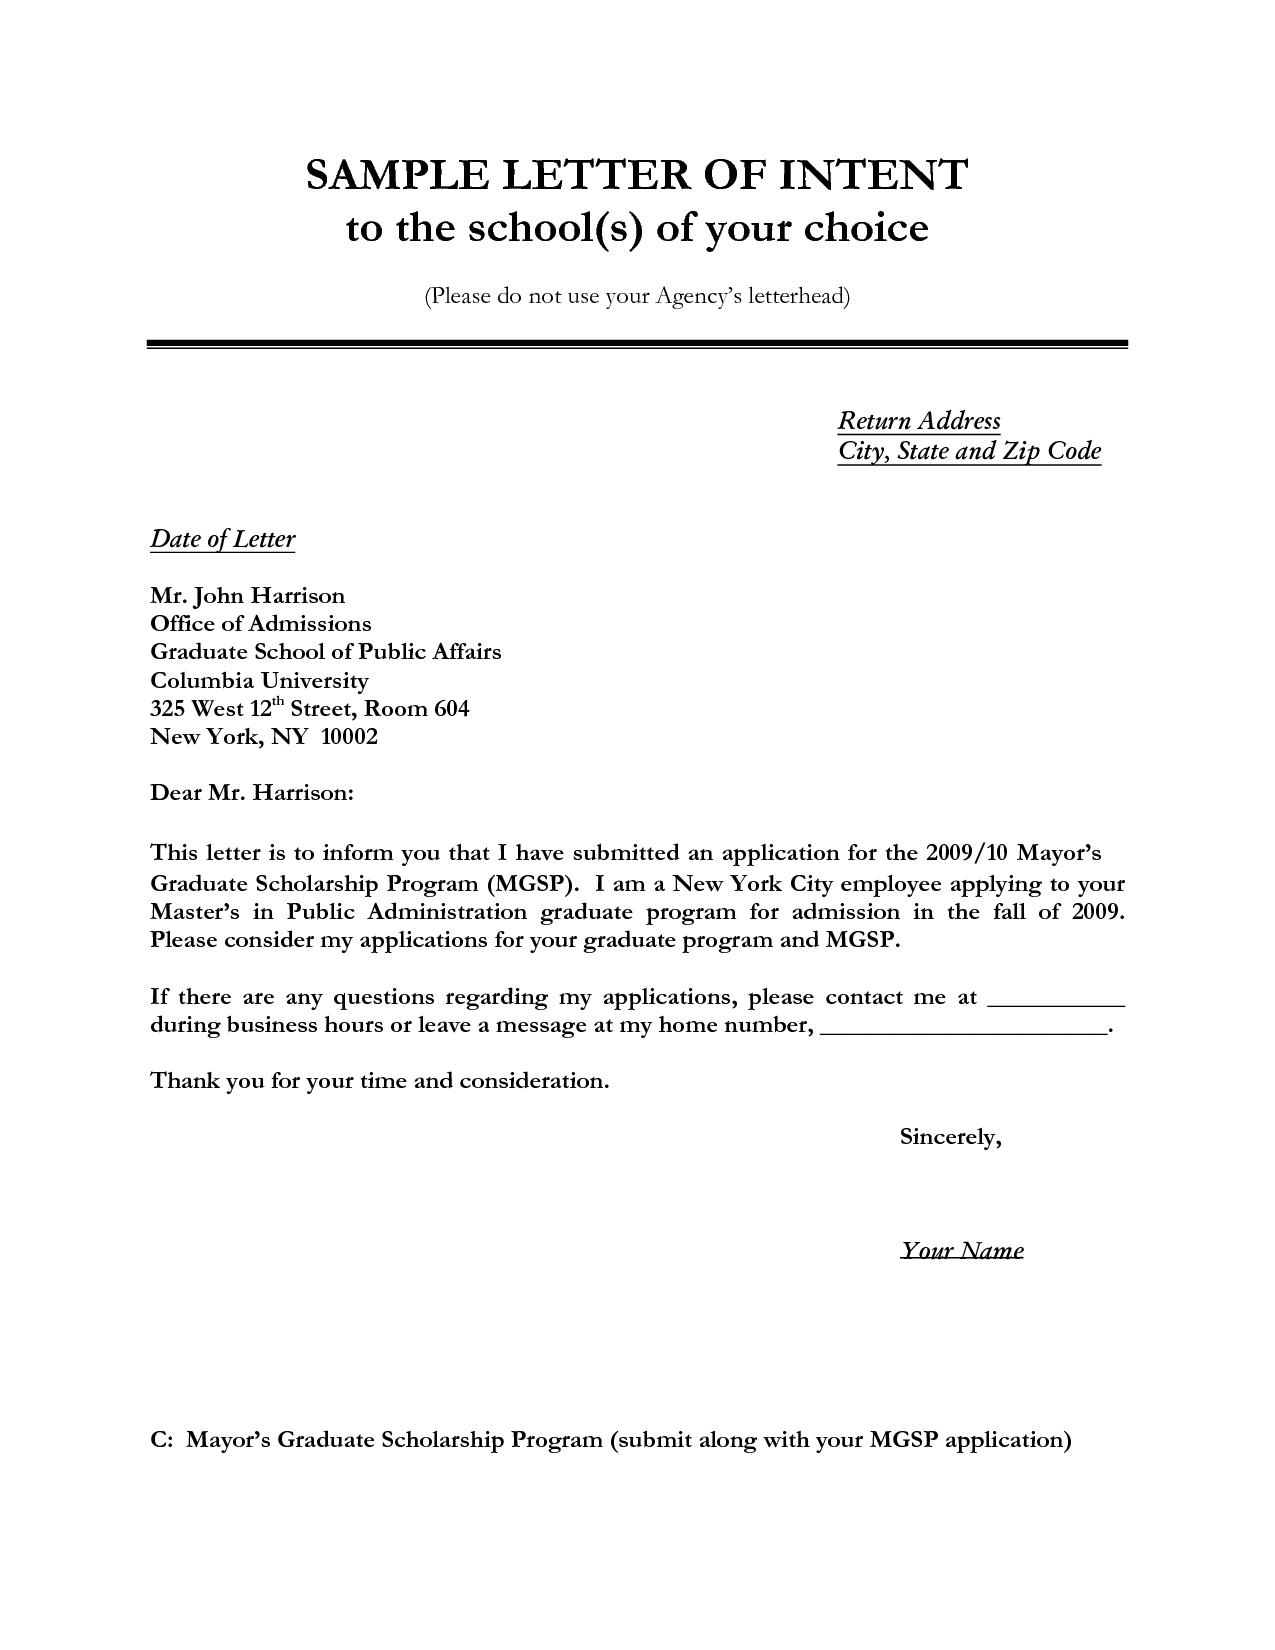 letter of intent template Collection-Letter of intent sample 20-l